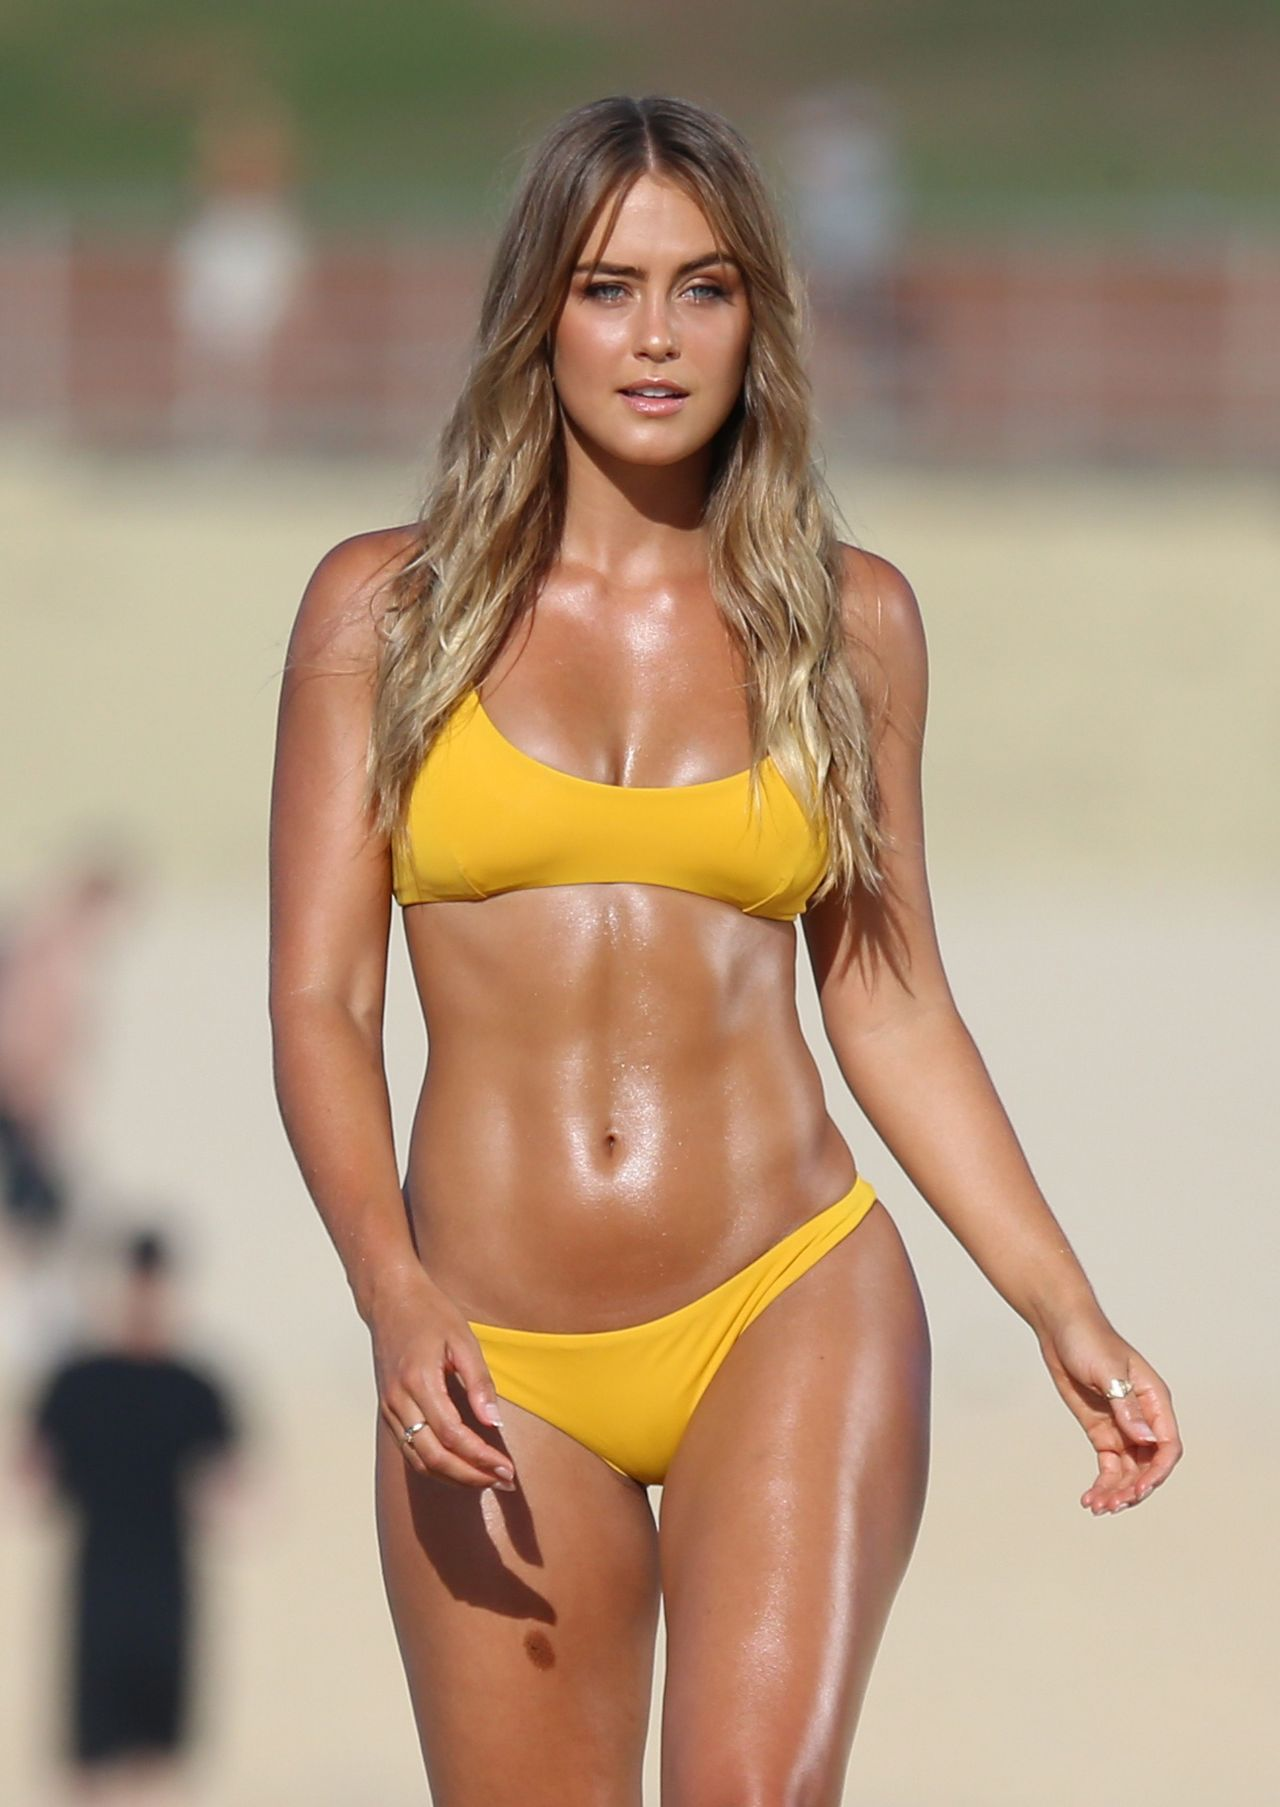 Steph Smith - Bikini Photoshoot At Bondi Beach 03292018-9518